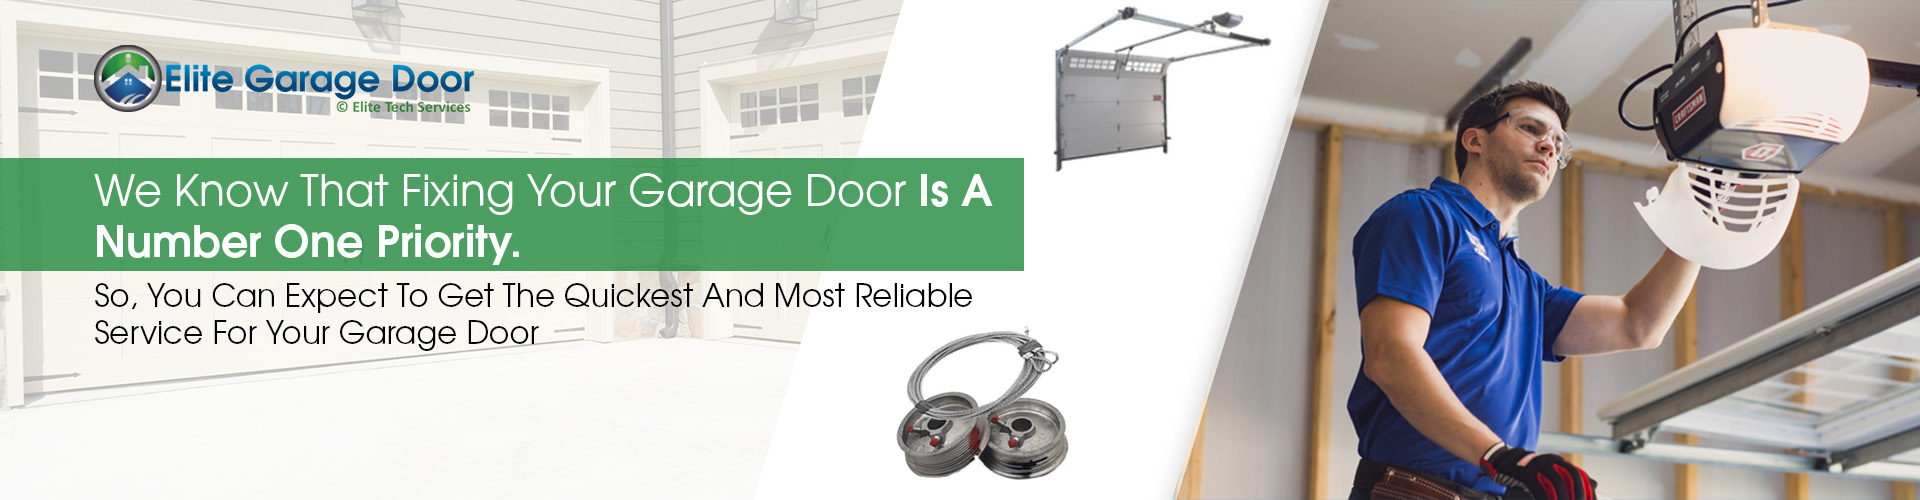 Garage Door Repair & Installation Services In Warren & Surrounding Areas